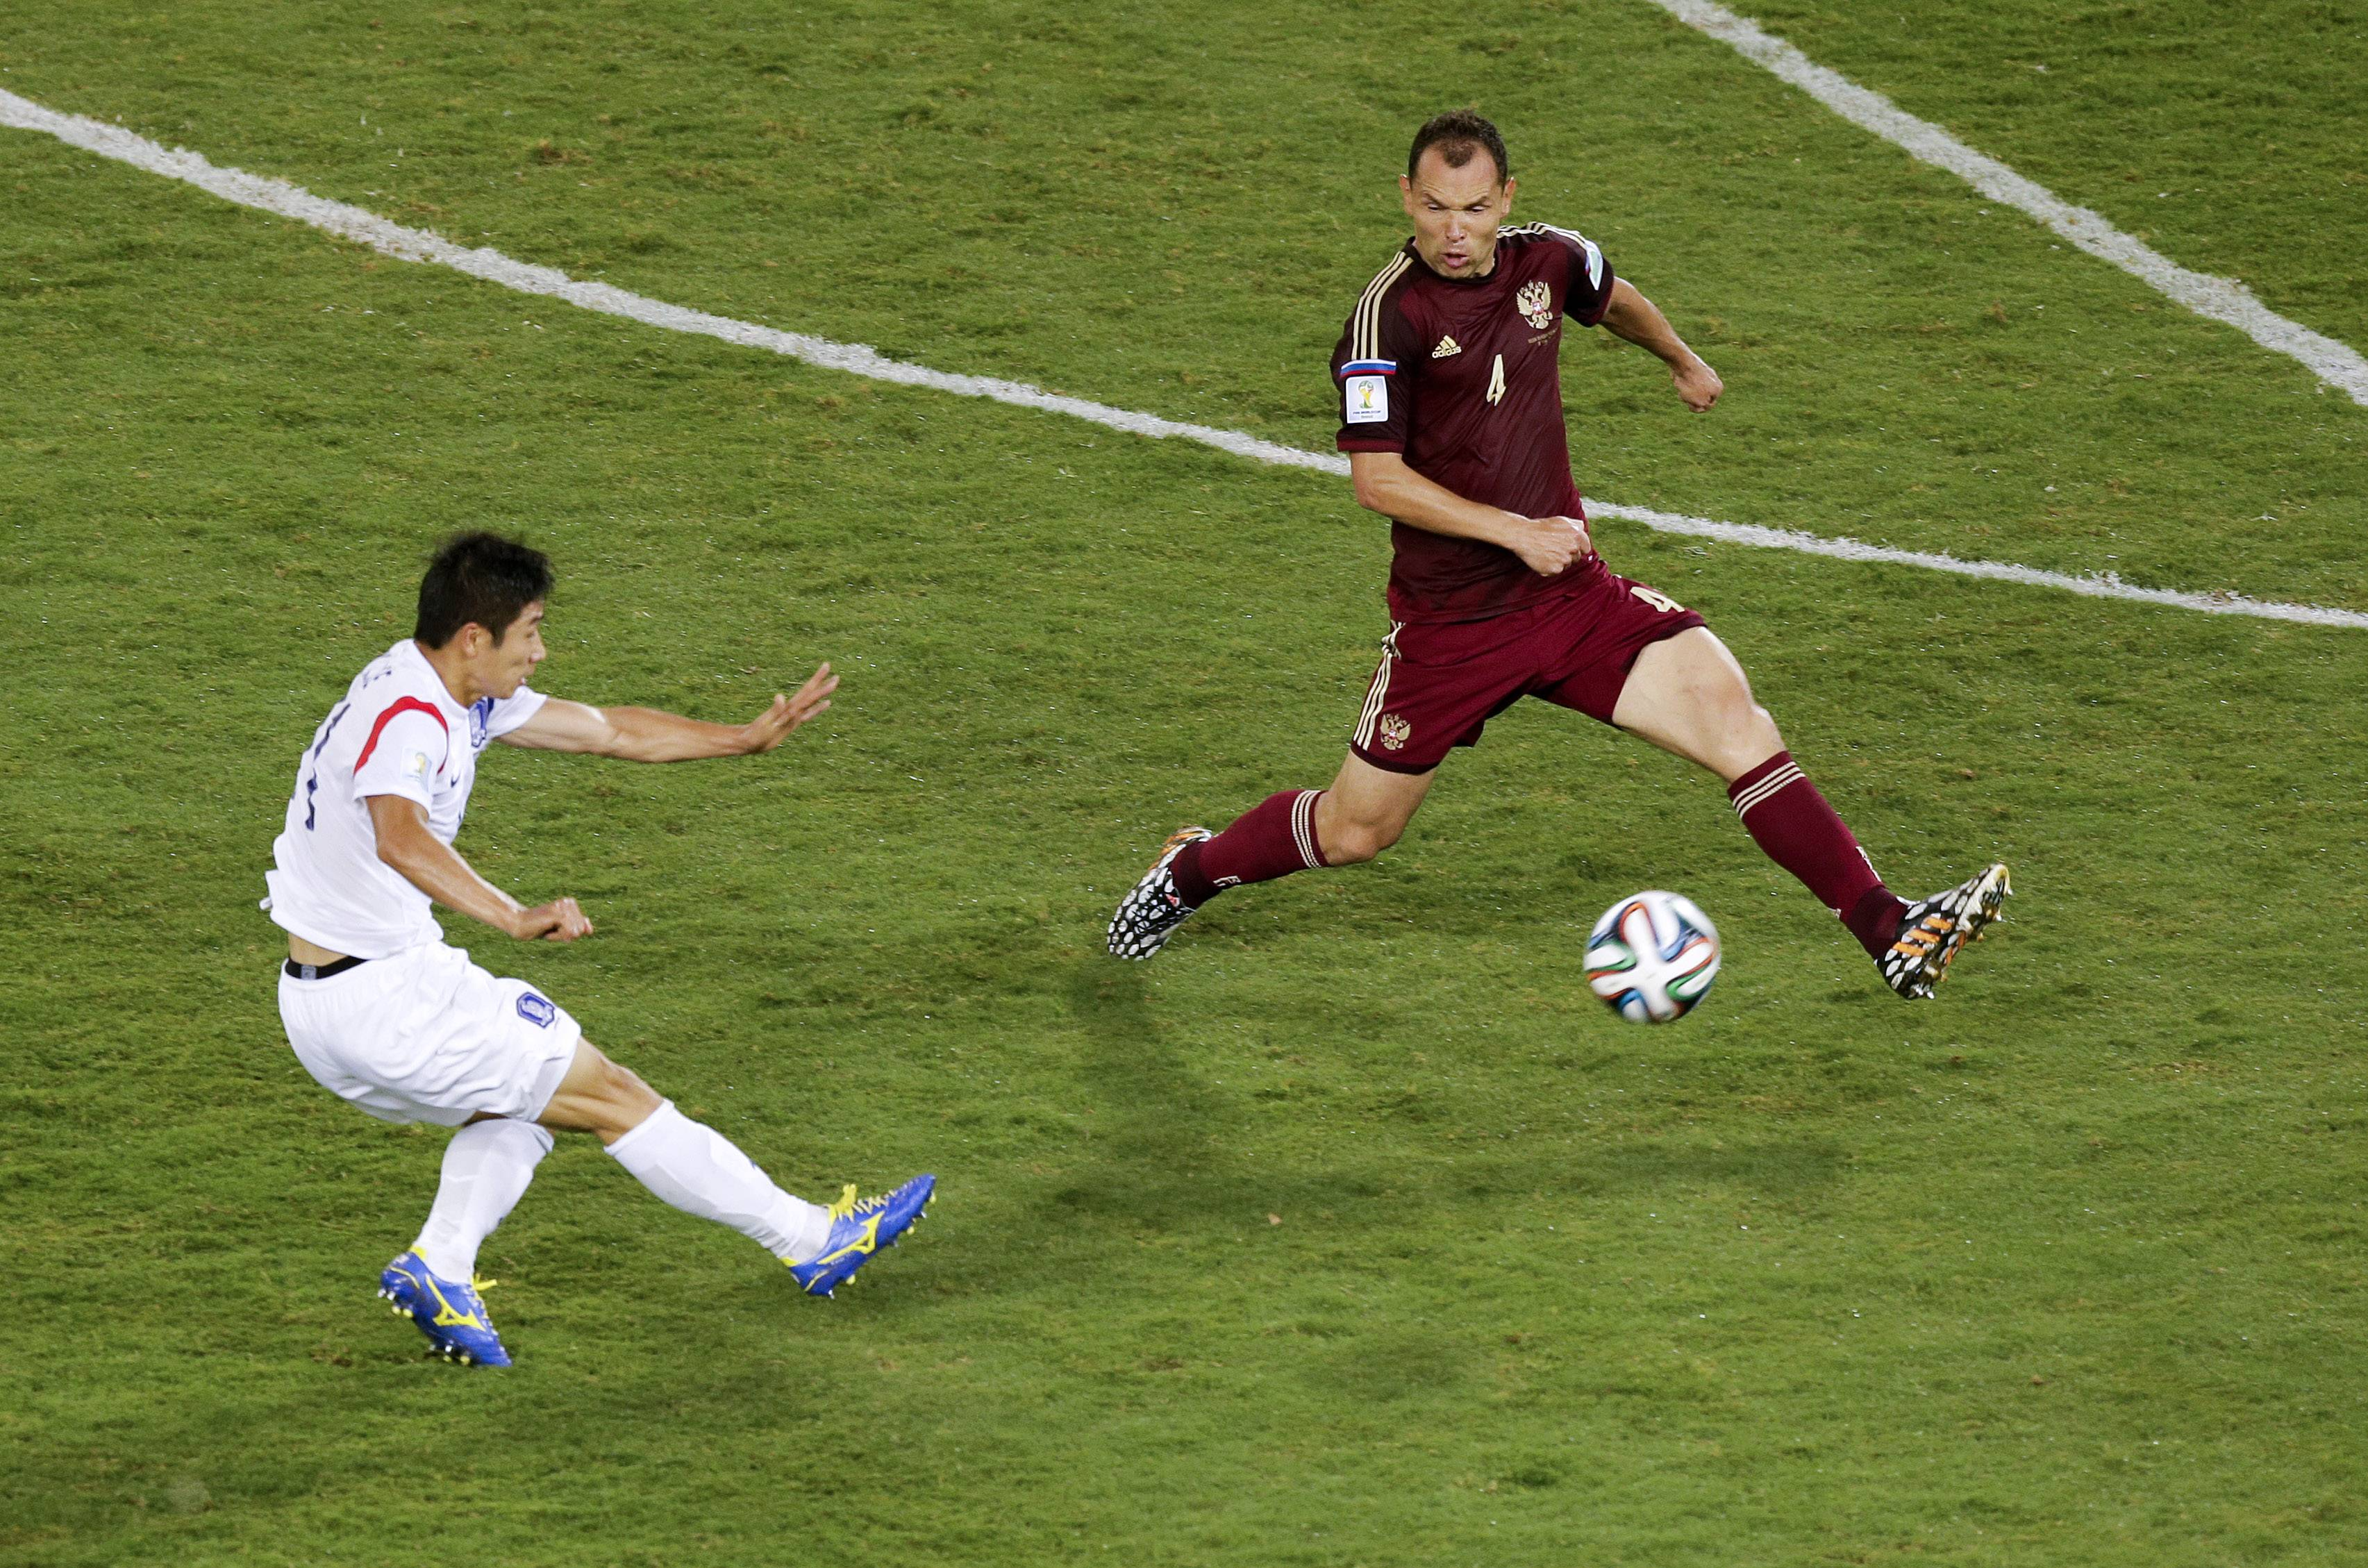 South Korea's Lee Keun-ho, left, scores the opening goal past Russia's Sergei Ignashevich (4) during the group H World Cup soccer match between Russia and South Korea at the Arena Pantanal in Cuiaba, Brazil, Tuesday, June 17, 2014.